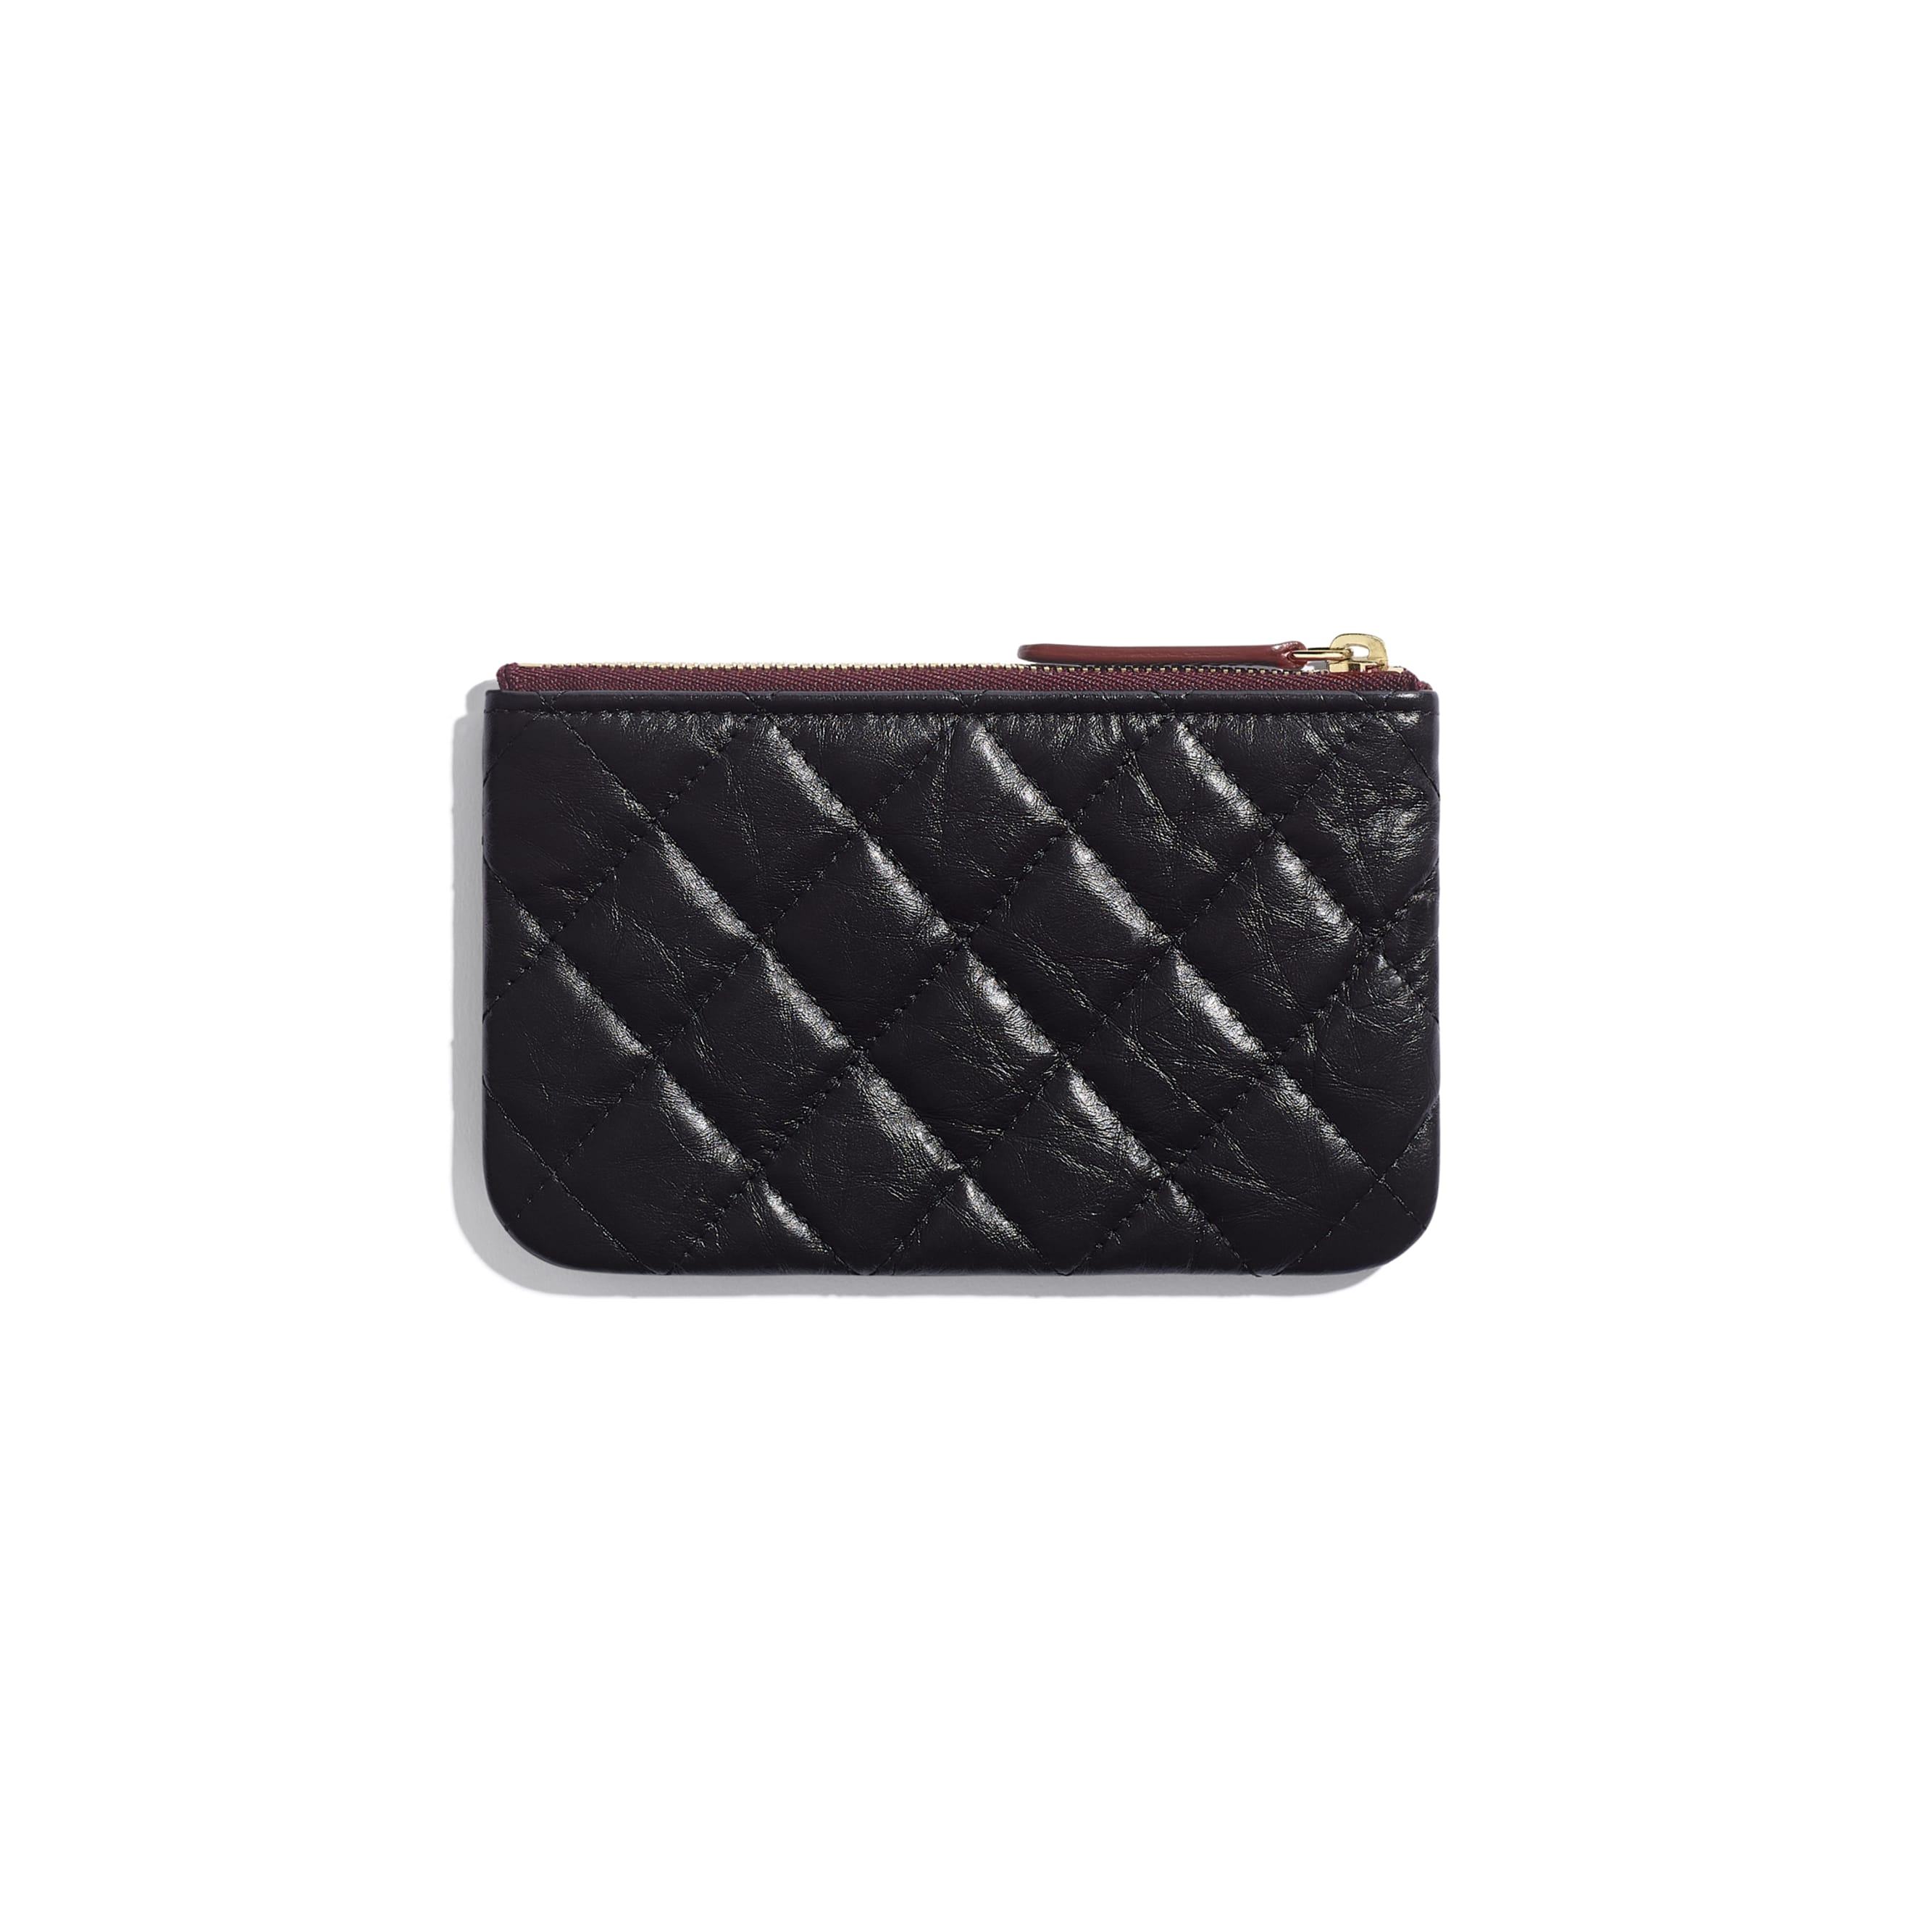 2.55 Mini Pouch - Black - Aged Calfskin & Gold-Tone Metal - CHANEL - Alternative view - see standard sized version